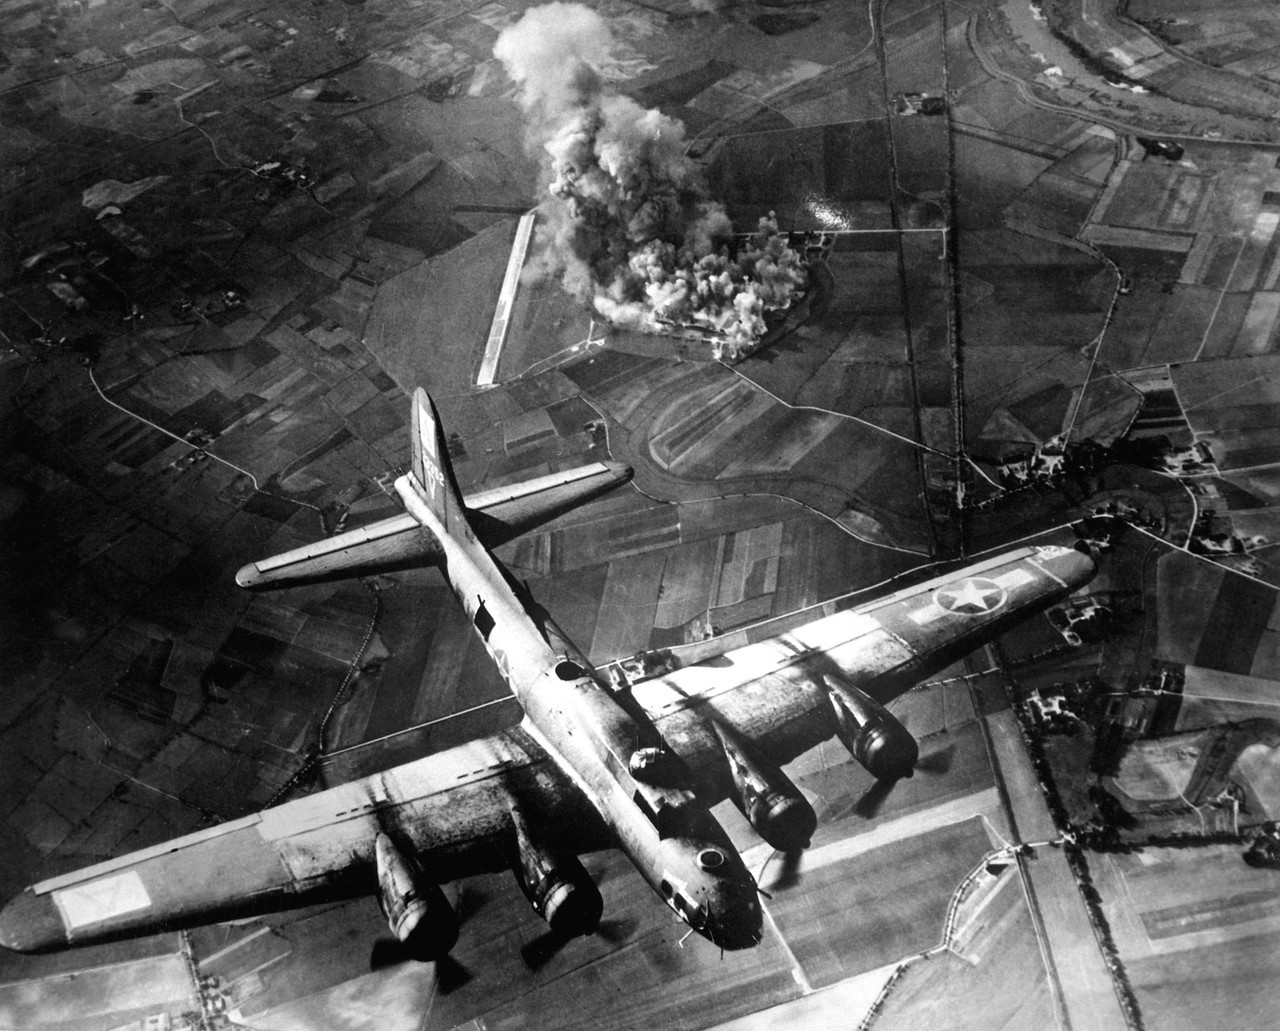 Bombing of a factory at Marienburg, Germany, on 9 October 1943 (Credit: US Air Force, Public Domain)